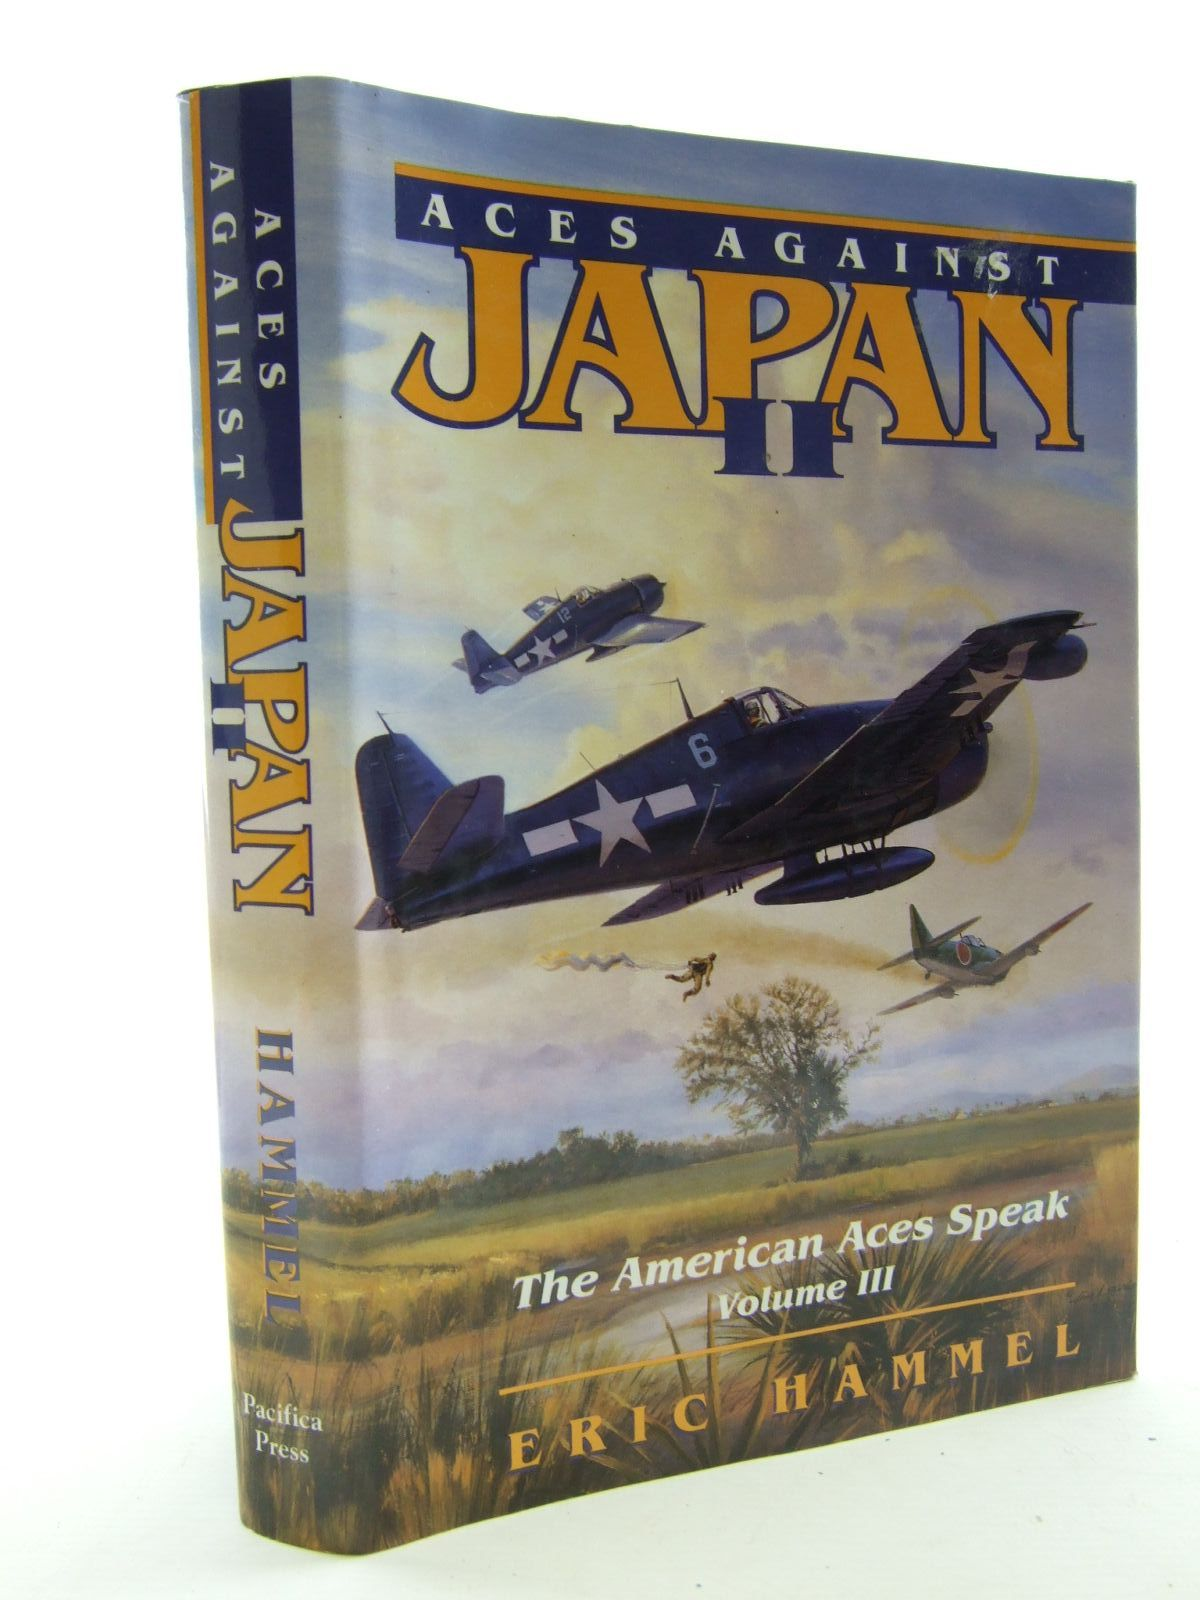 Photo of ACES AGAINST JAPAN II THE AMERICAN ACE SPEAKS VOLUME III written by Hammel, Eric published by Pacifica Press (STOCK CODE: 1706365)  for sale by Stella & Rose's Books